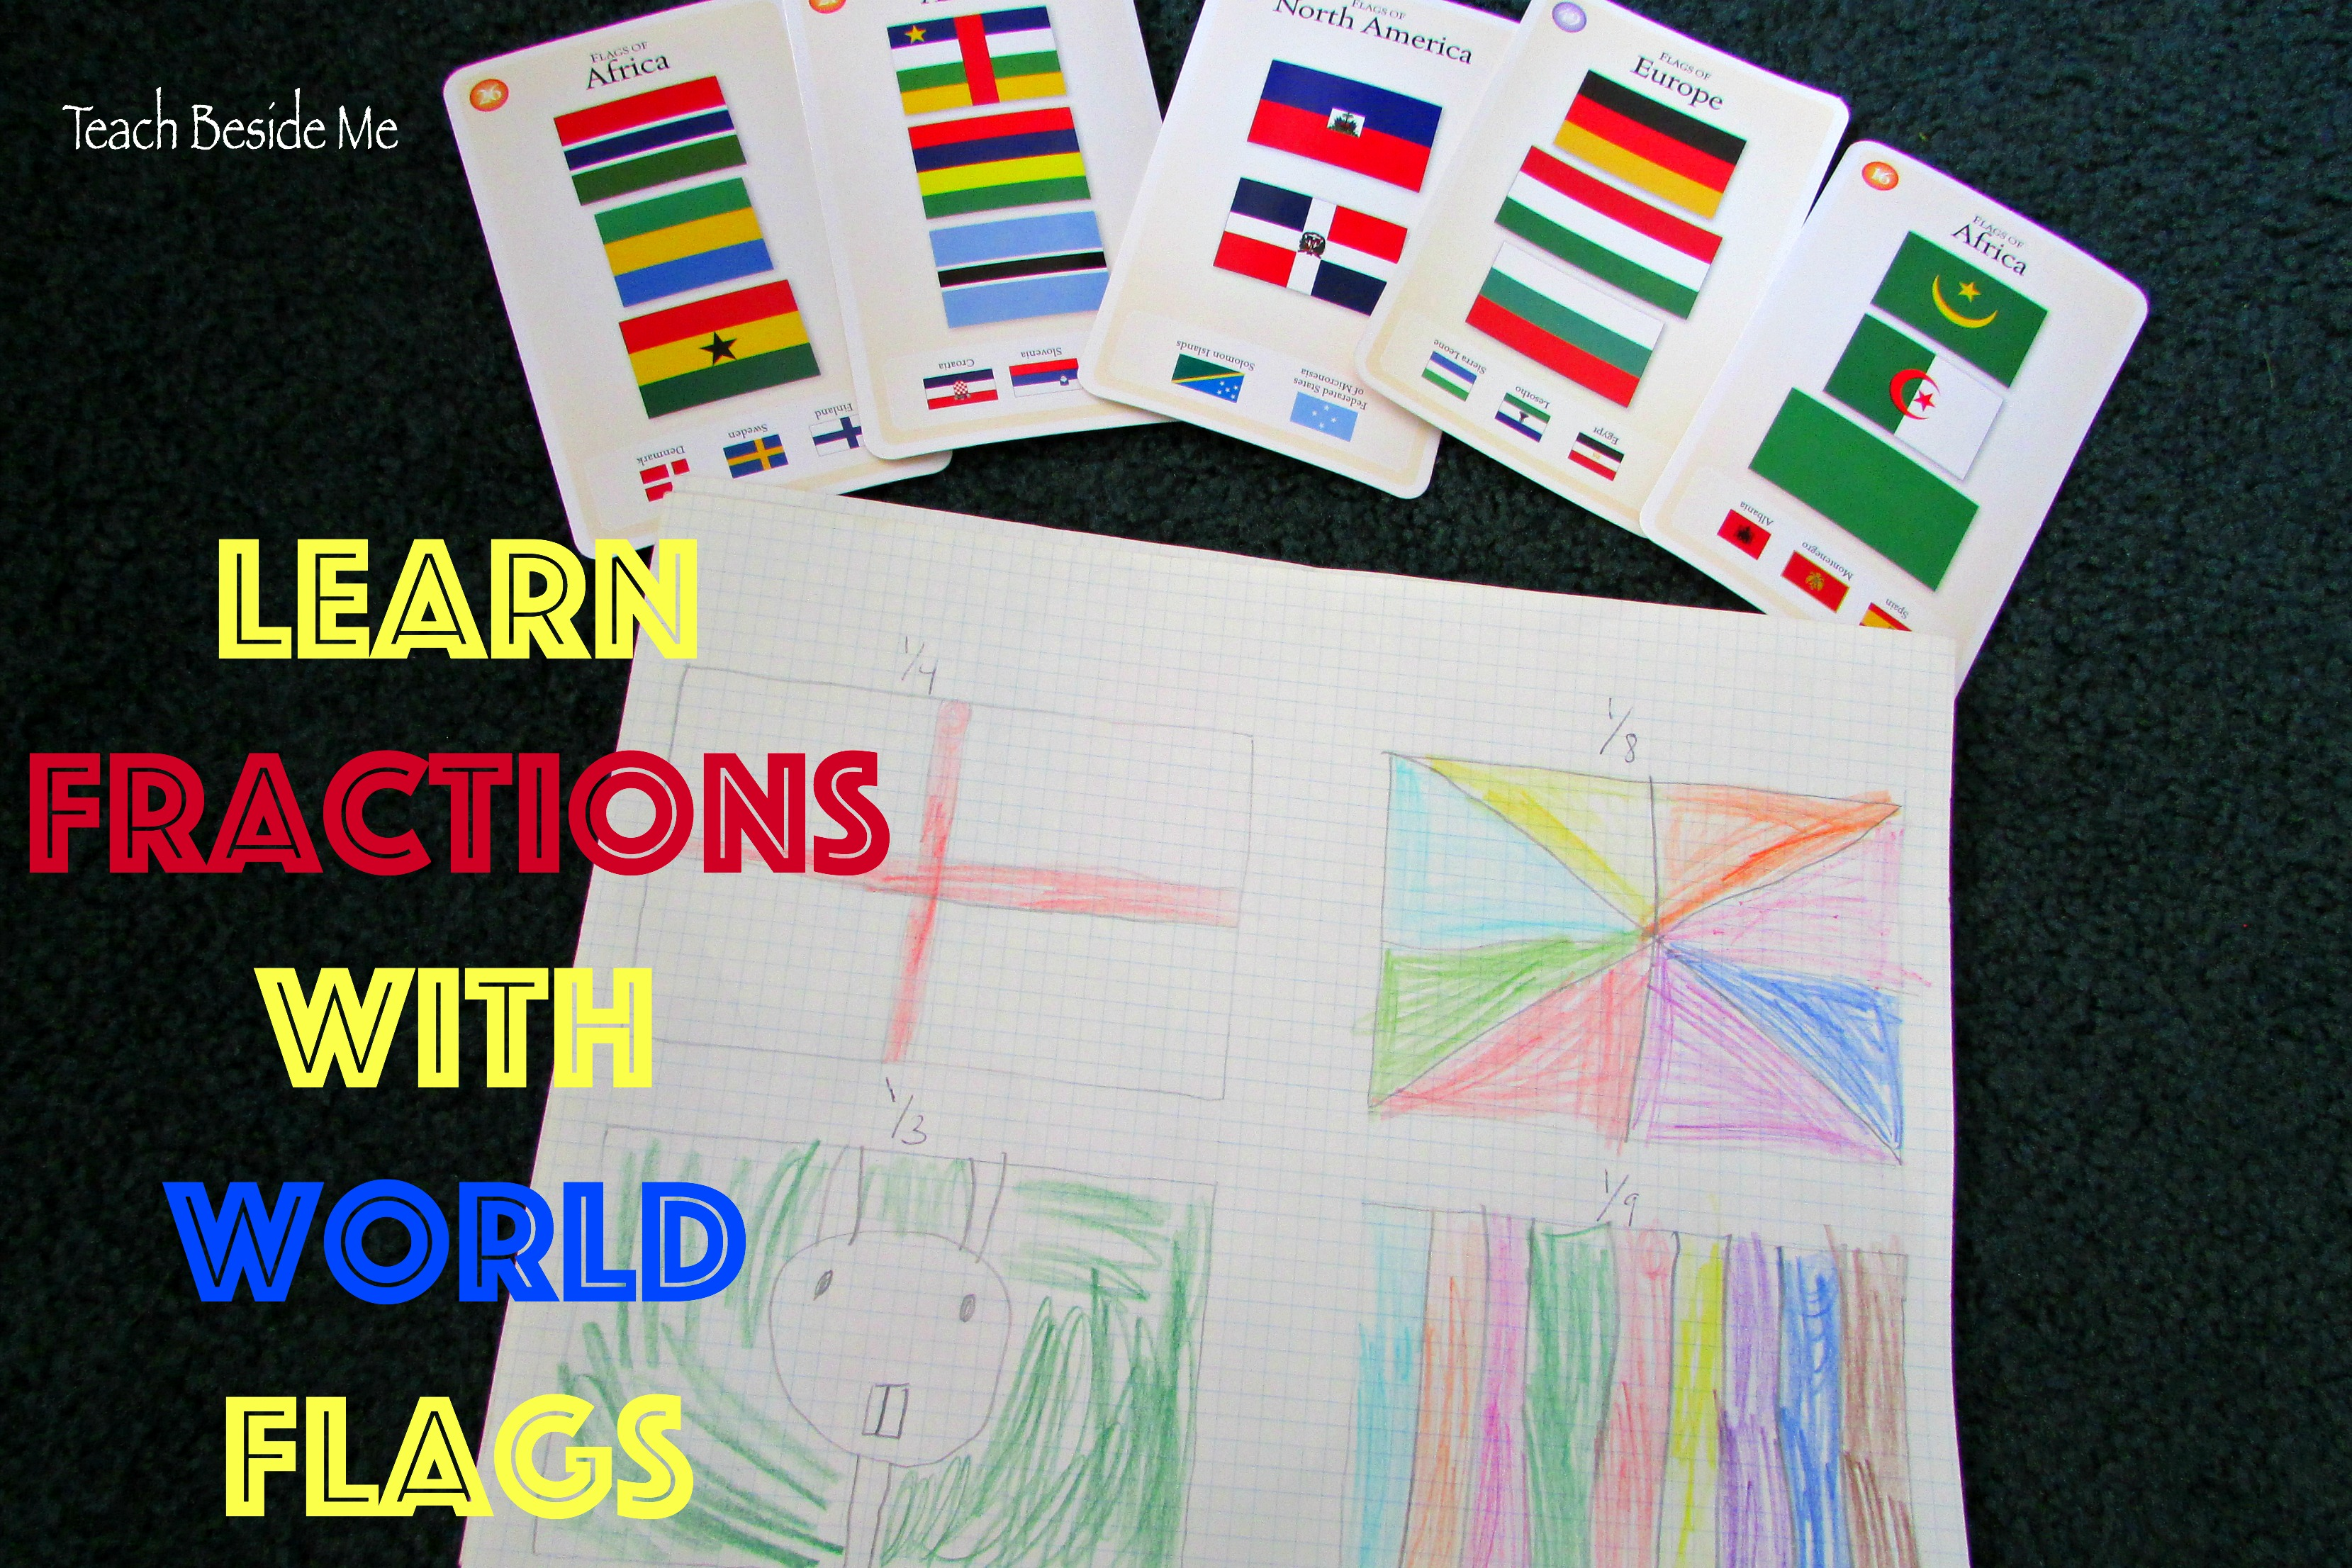 Learning Fractions With Flags